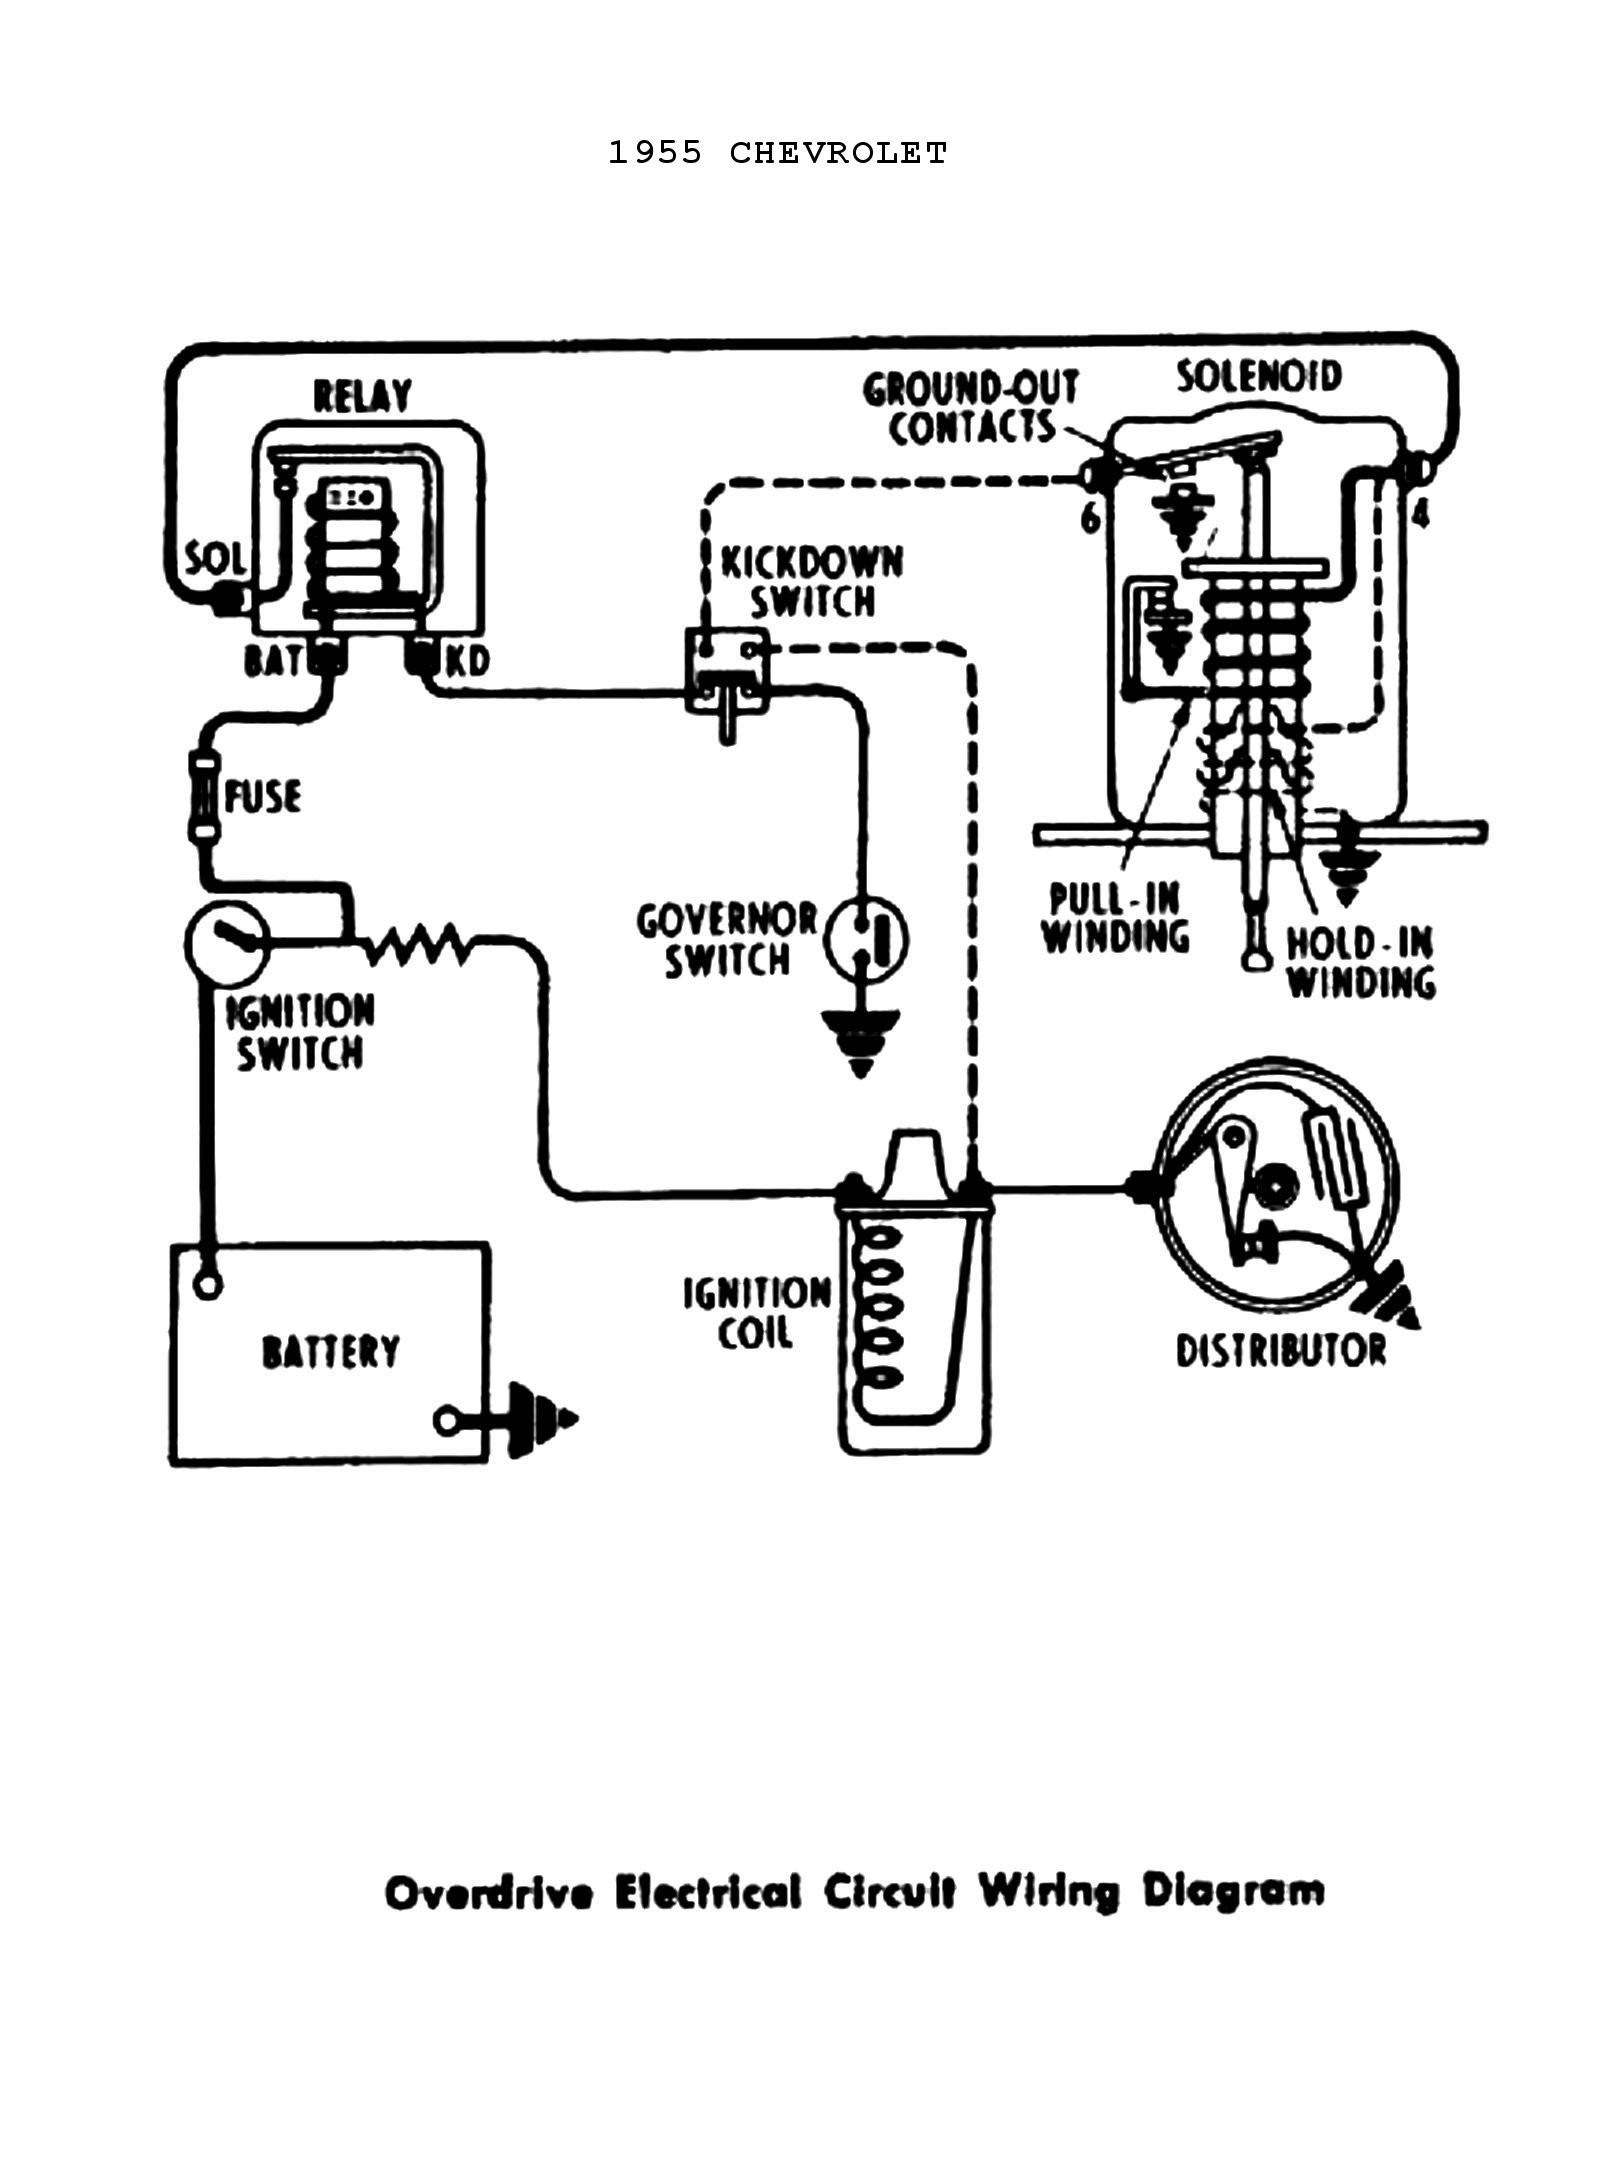 1955 mg wiring diagram wiring diagram 1973 Ford Mustang Wiring Diagram 1955 mg wiring diagram wiring diagram1955 mg wiring diagram wiring library1955 mg wiring diagram